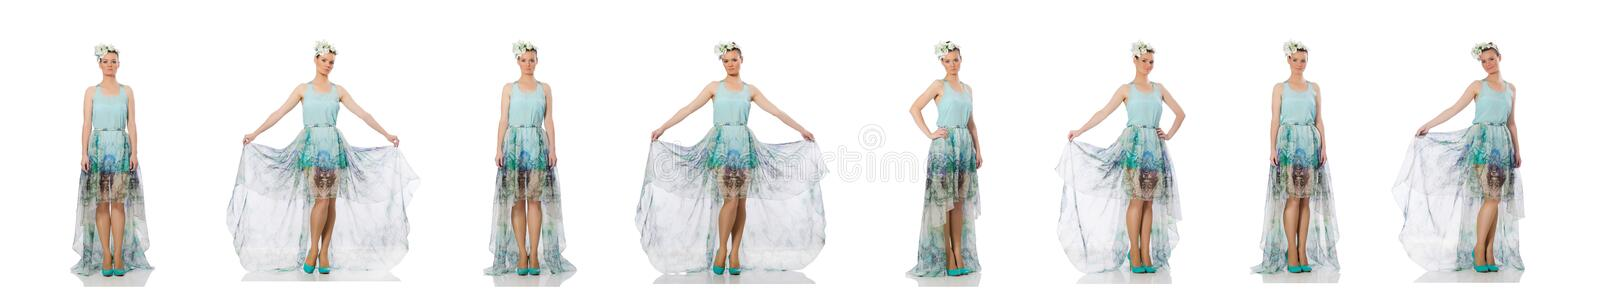 Caucasian model in blue floral dress isolated on white royalty free stock photography